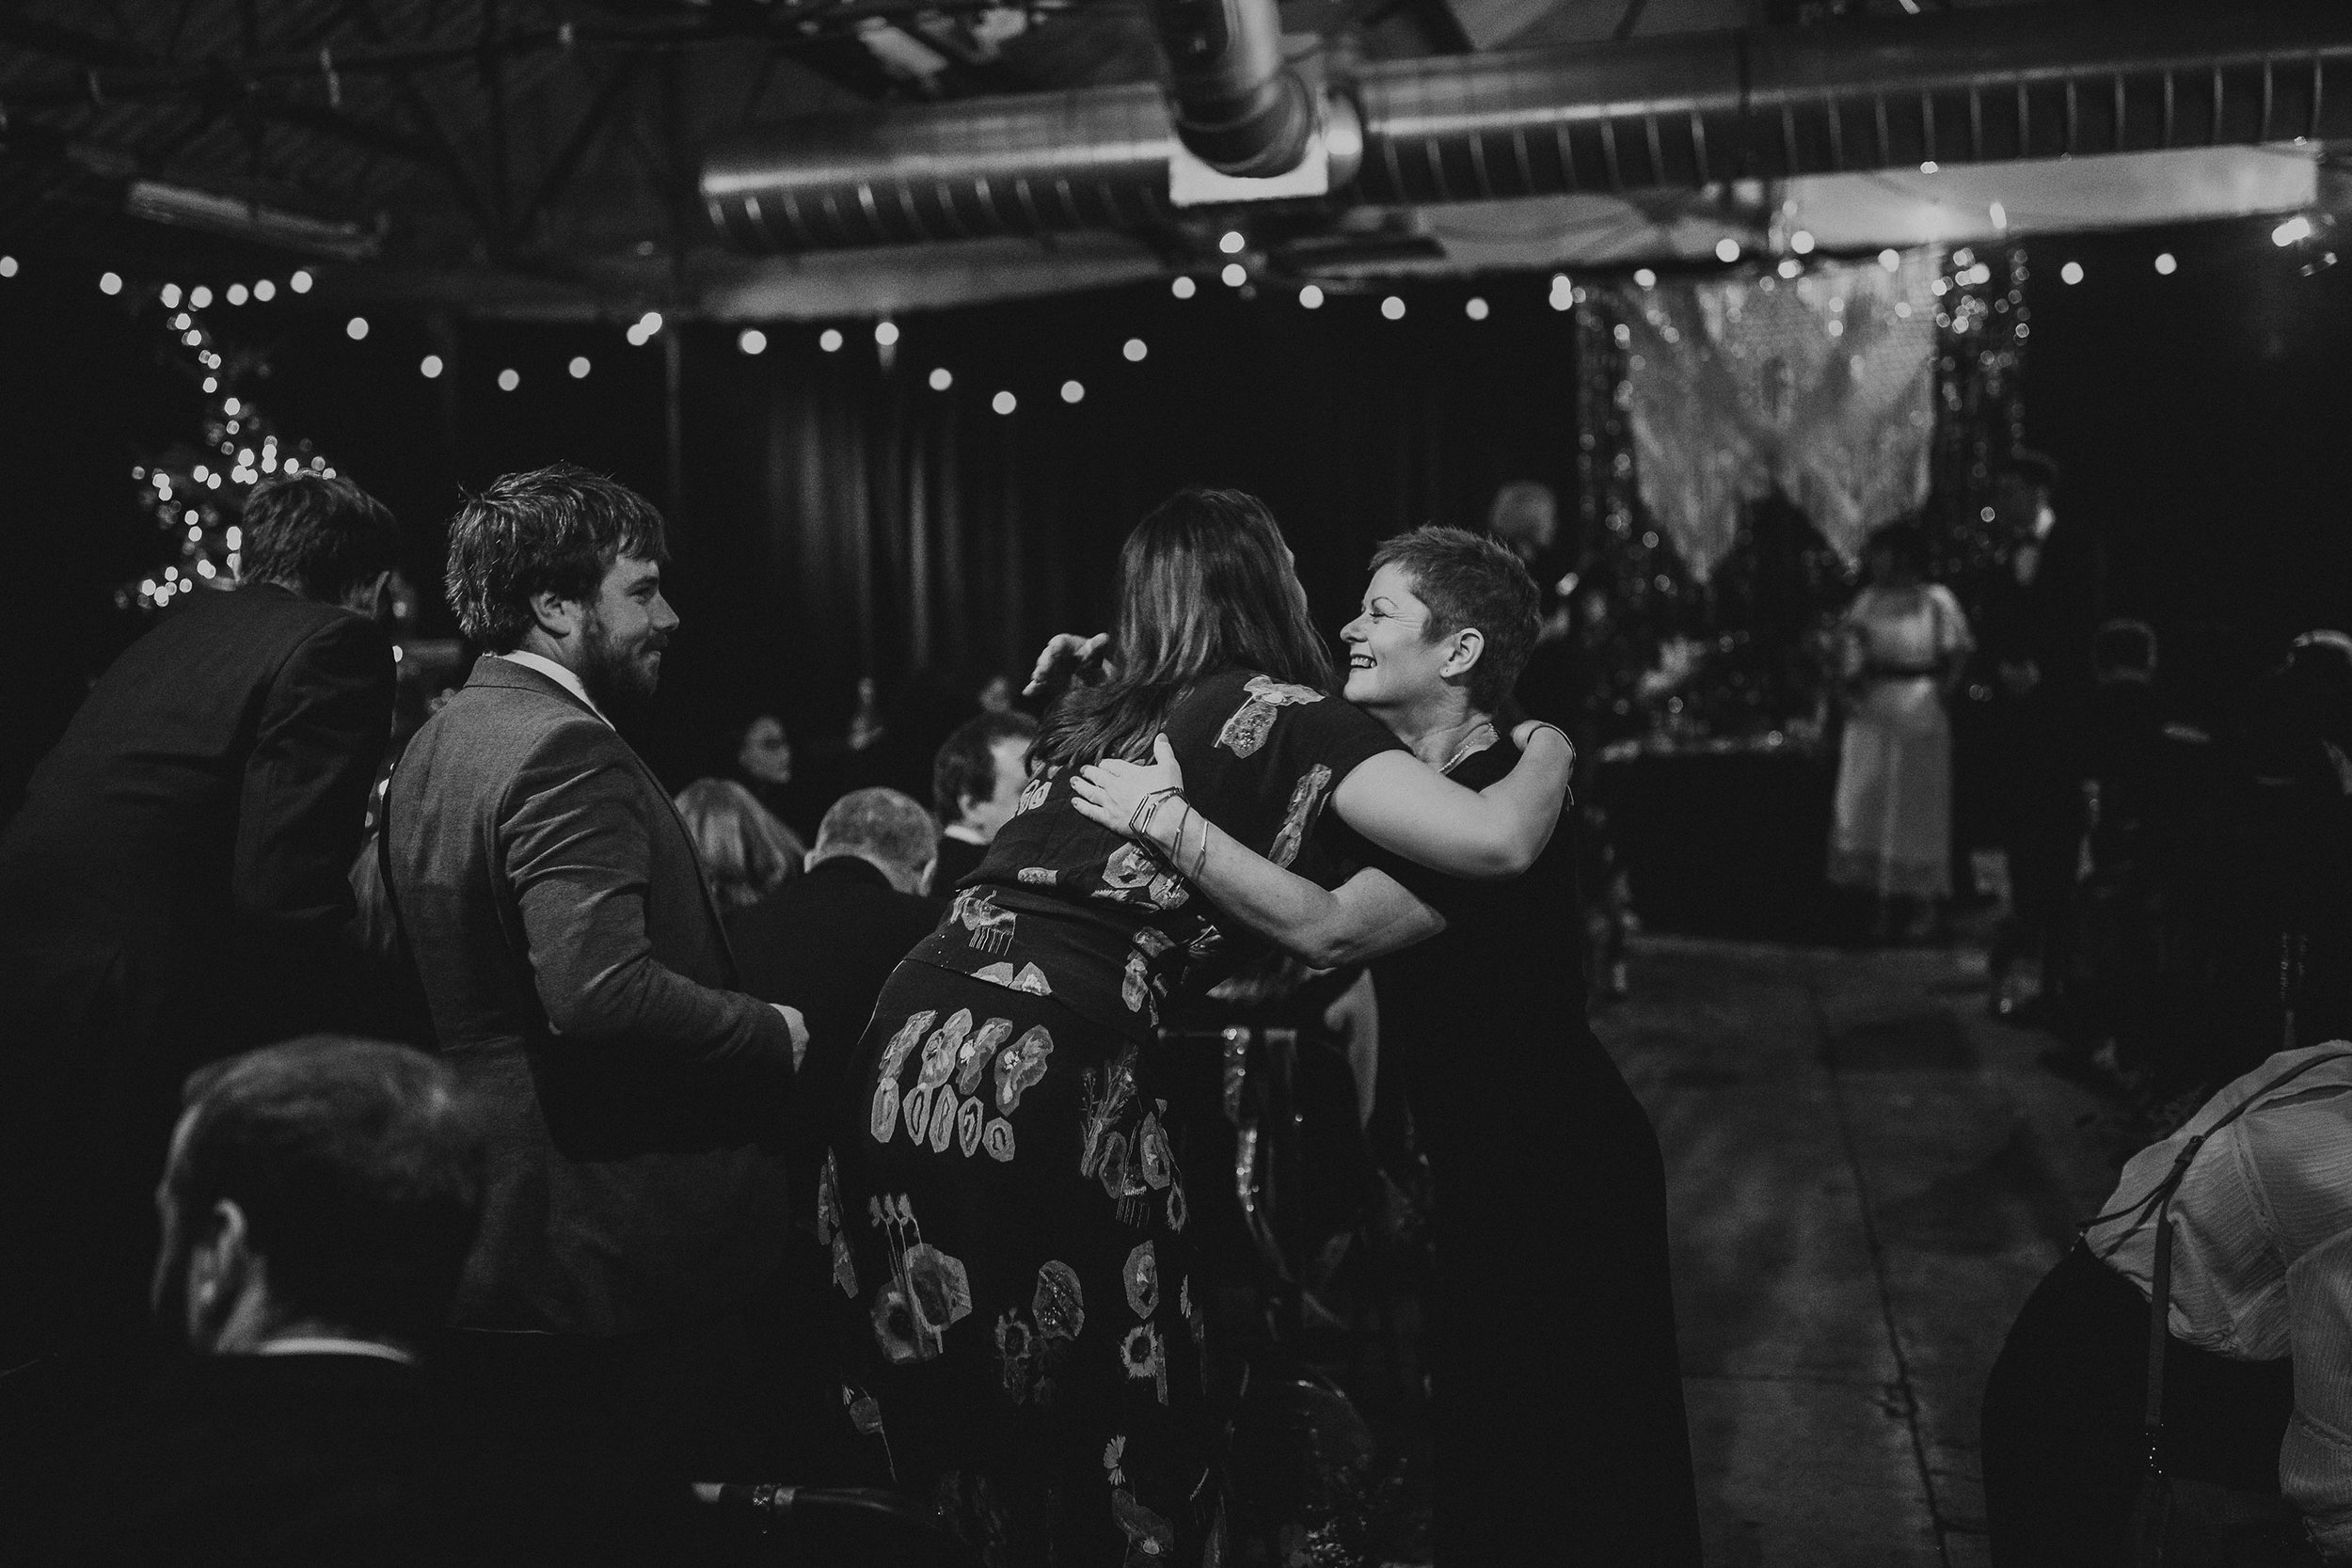 DRYGATE_WEDDING_PHOTOGRAPHER_PJ_PHILLIPS_WEDDING_PHOTOGRAPHY_43.jpg